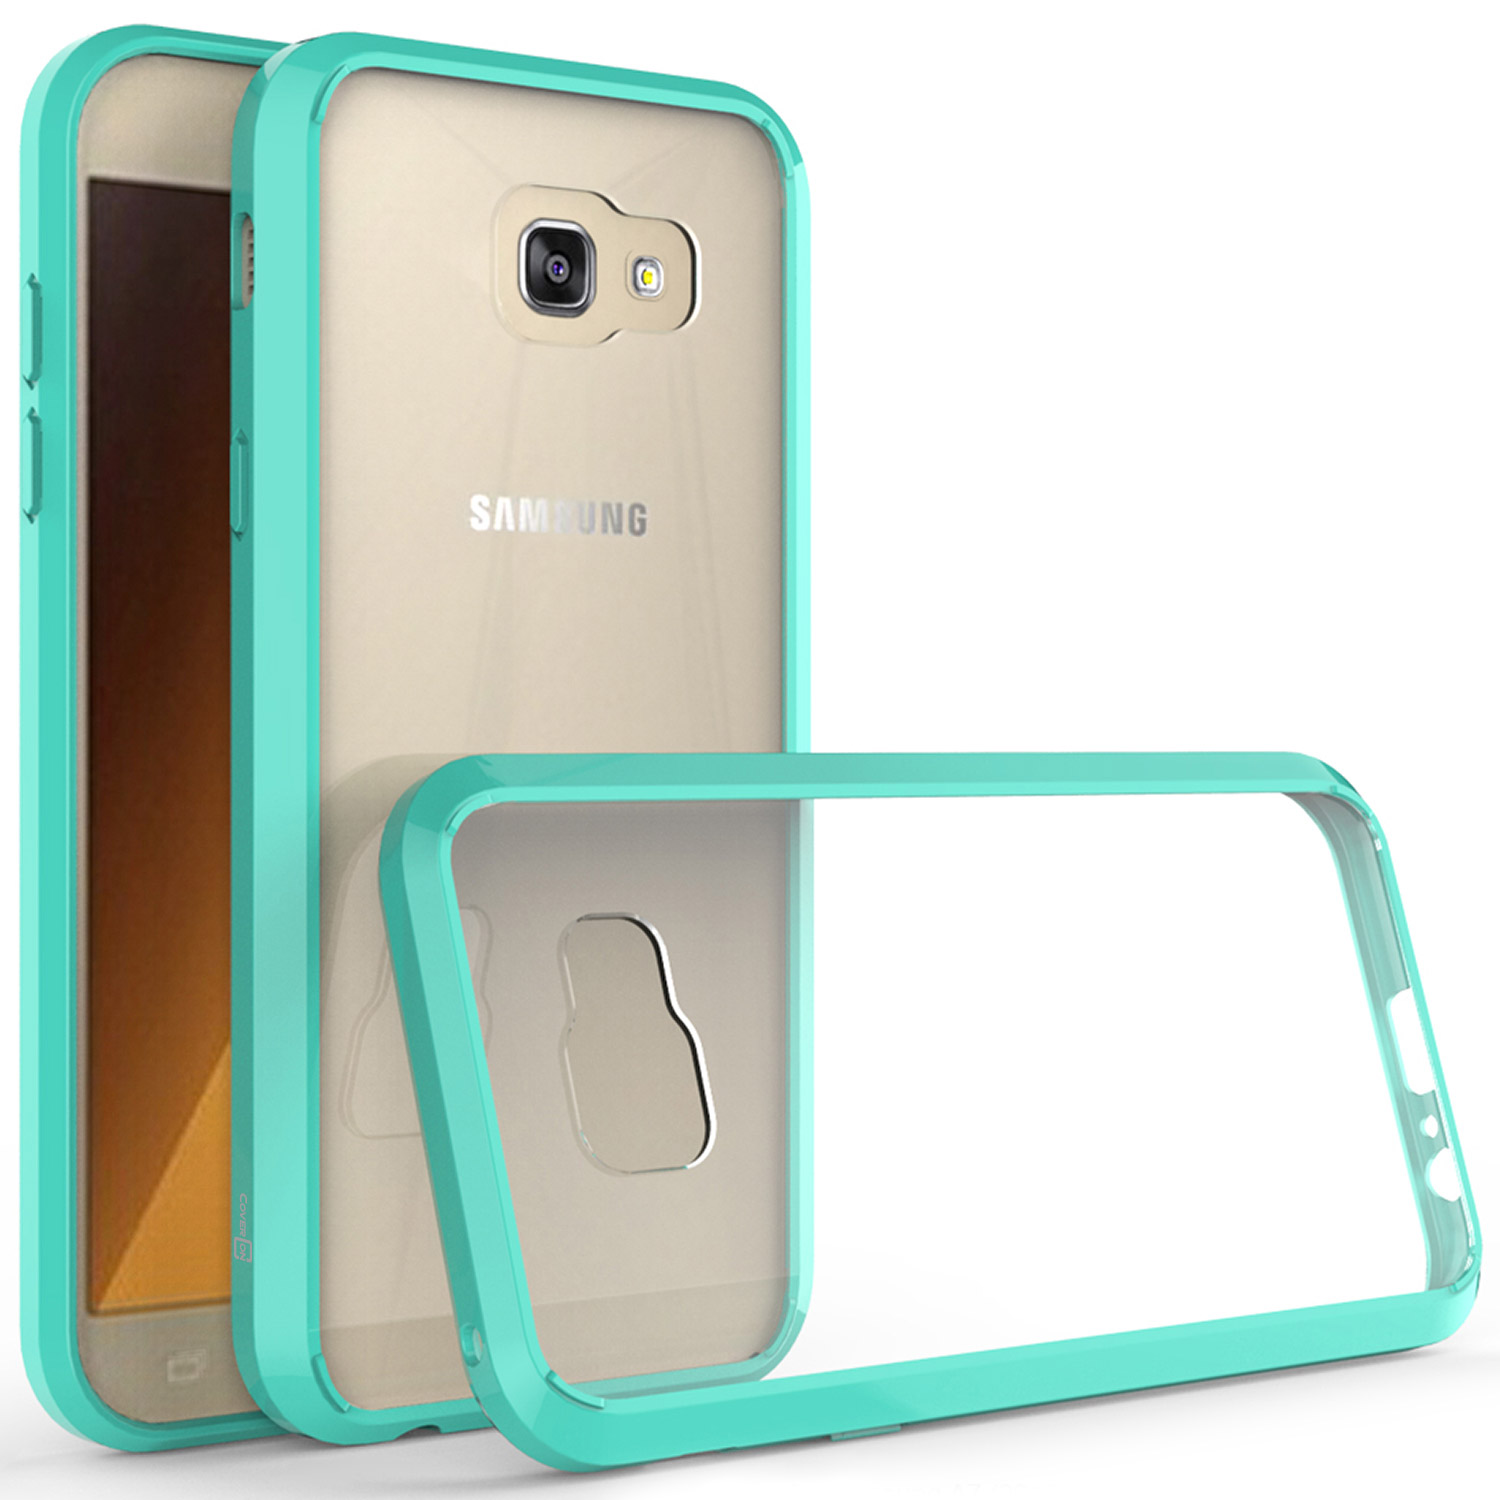 official photos a8f18 7a1eb Details about Hybrid Slim Fit Hard Back Cover Case for Samsung Galaxy A7  2017 Teal / Clear